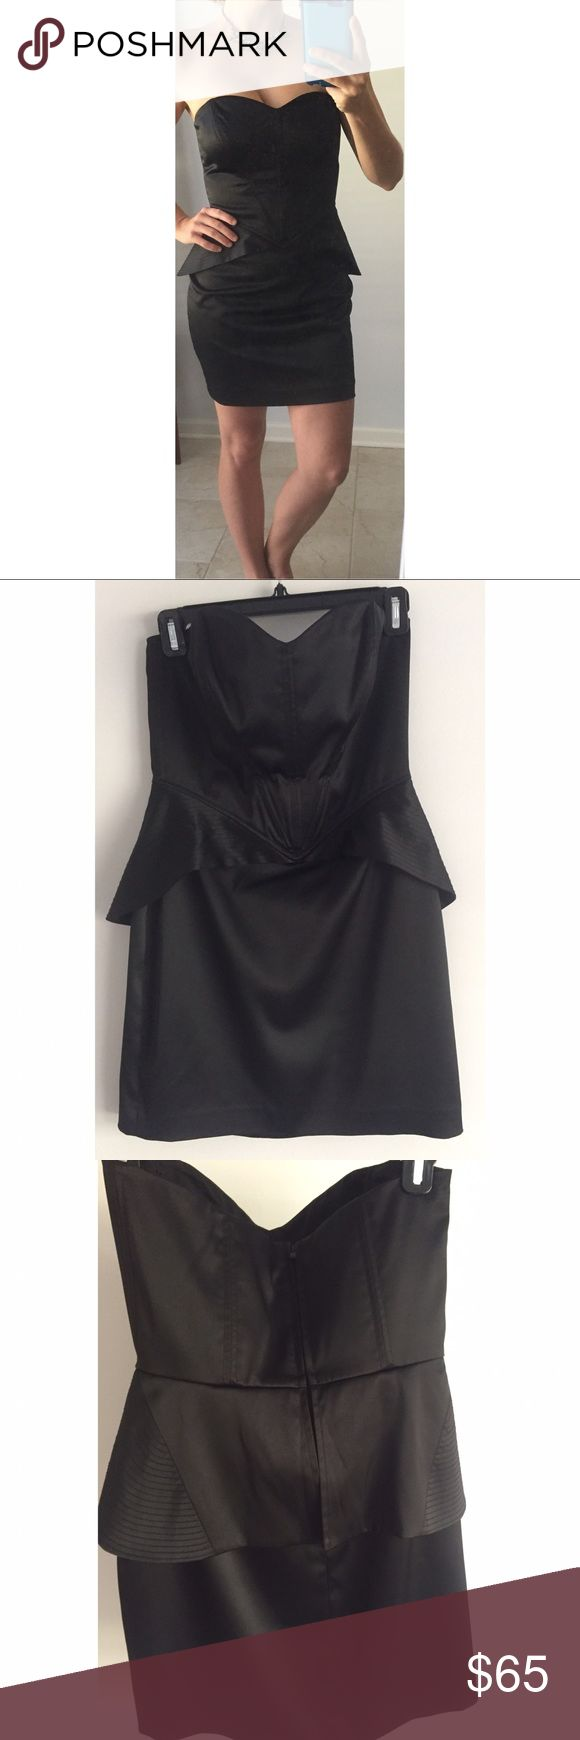 """Betsey Johnson peplum corset mini dress 6 small Amazing fit and very flattering to the figure. Wore 1 time and dry cleaned so ready to wear. No stains no tears. Light creasing at the midsection bodice area but straightens out when on body. Reasonable offers welcome. Fits as sized! Size 6! For reference I am 5""""4 in height in the photo with a 34D Betsey Johnson Dresses Mini"""